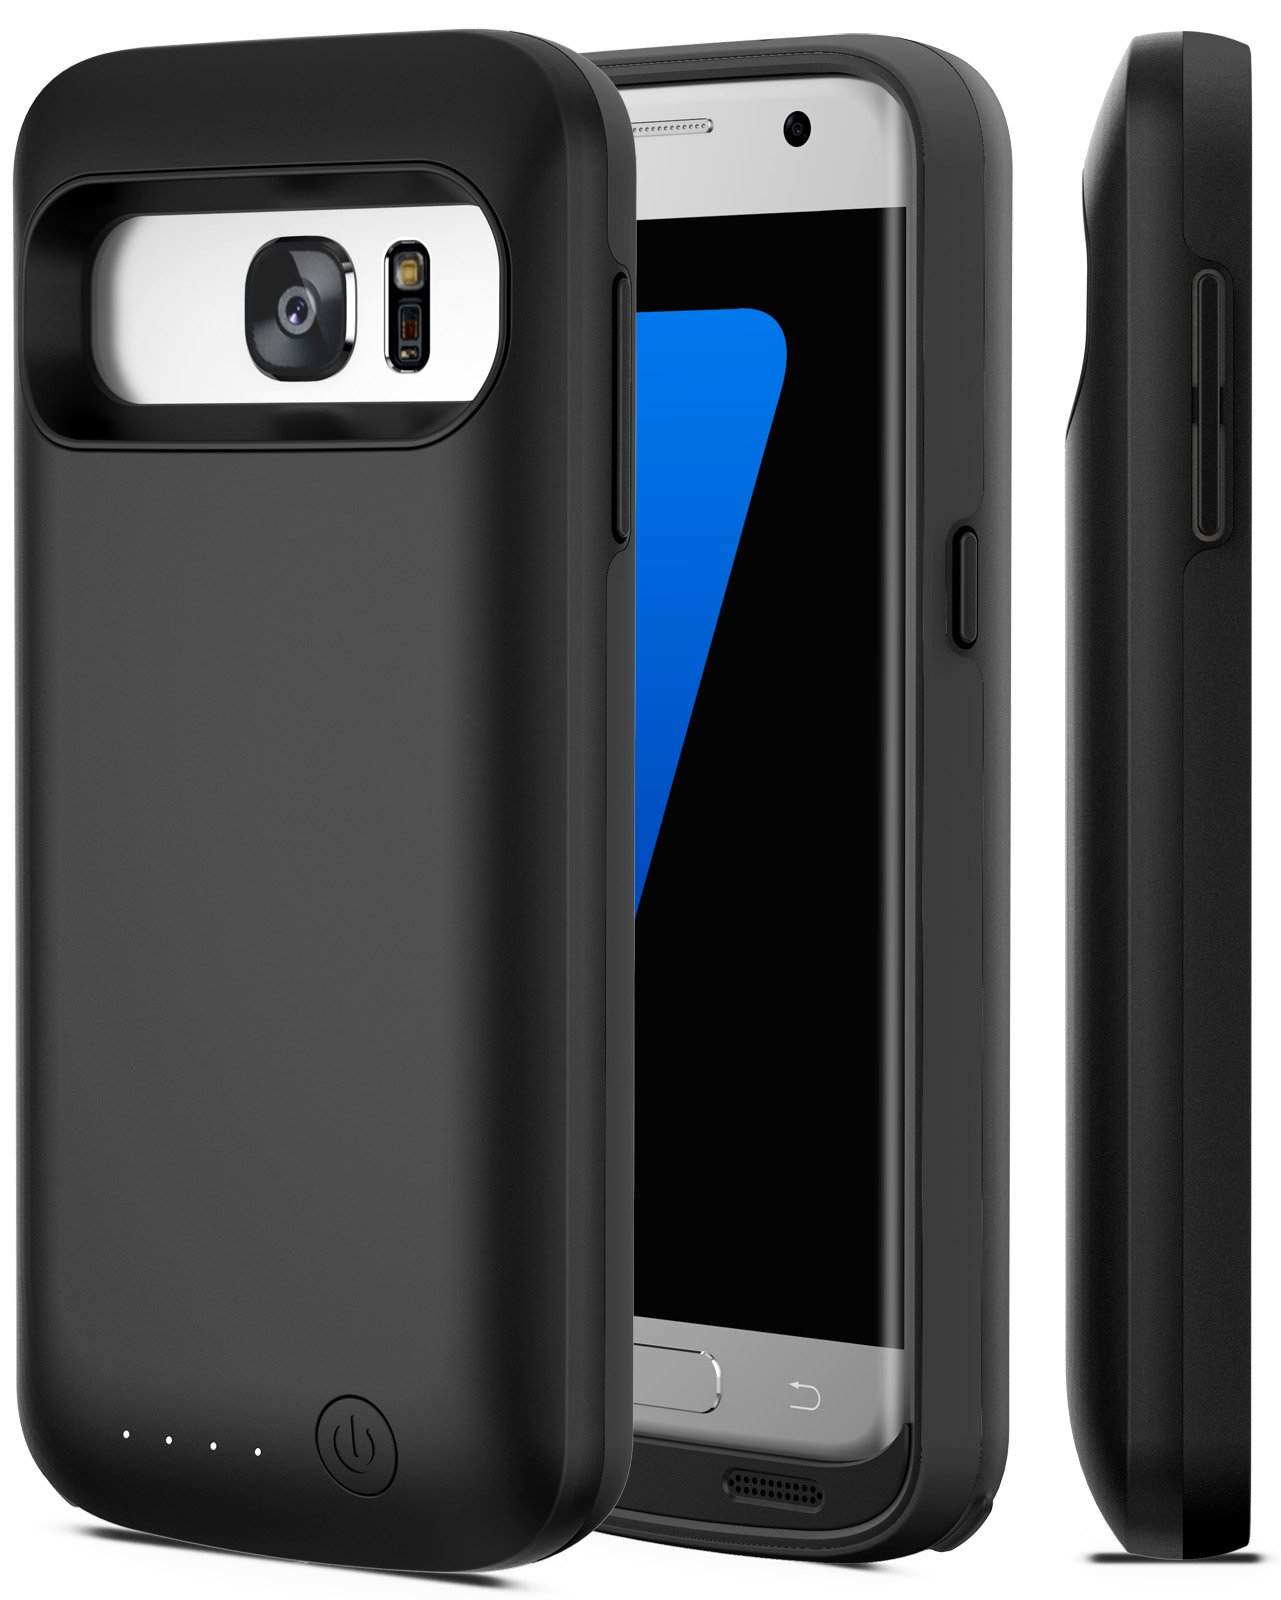 Galaxy S7 Battery Case, iPosible [5000mAh] External Battery Charger Case The Galaxy S7 Charging Power Battery Pack-Black [24 Month Warranty]